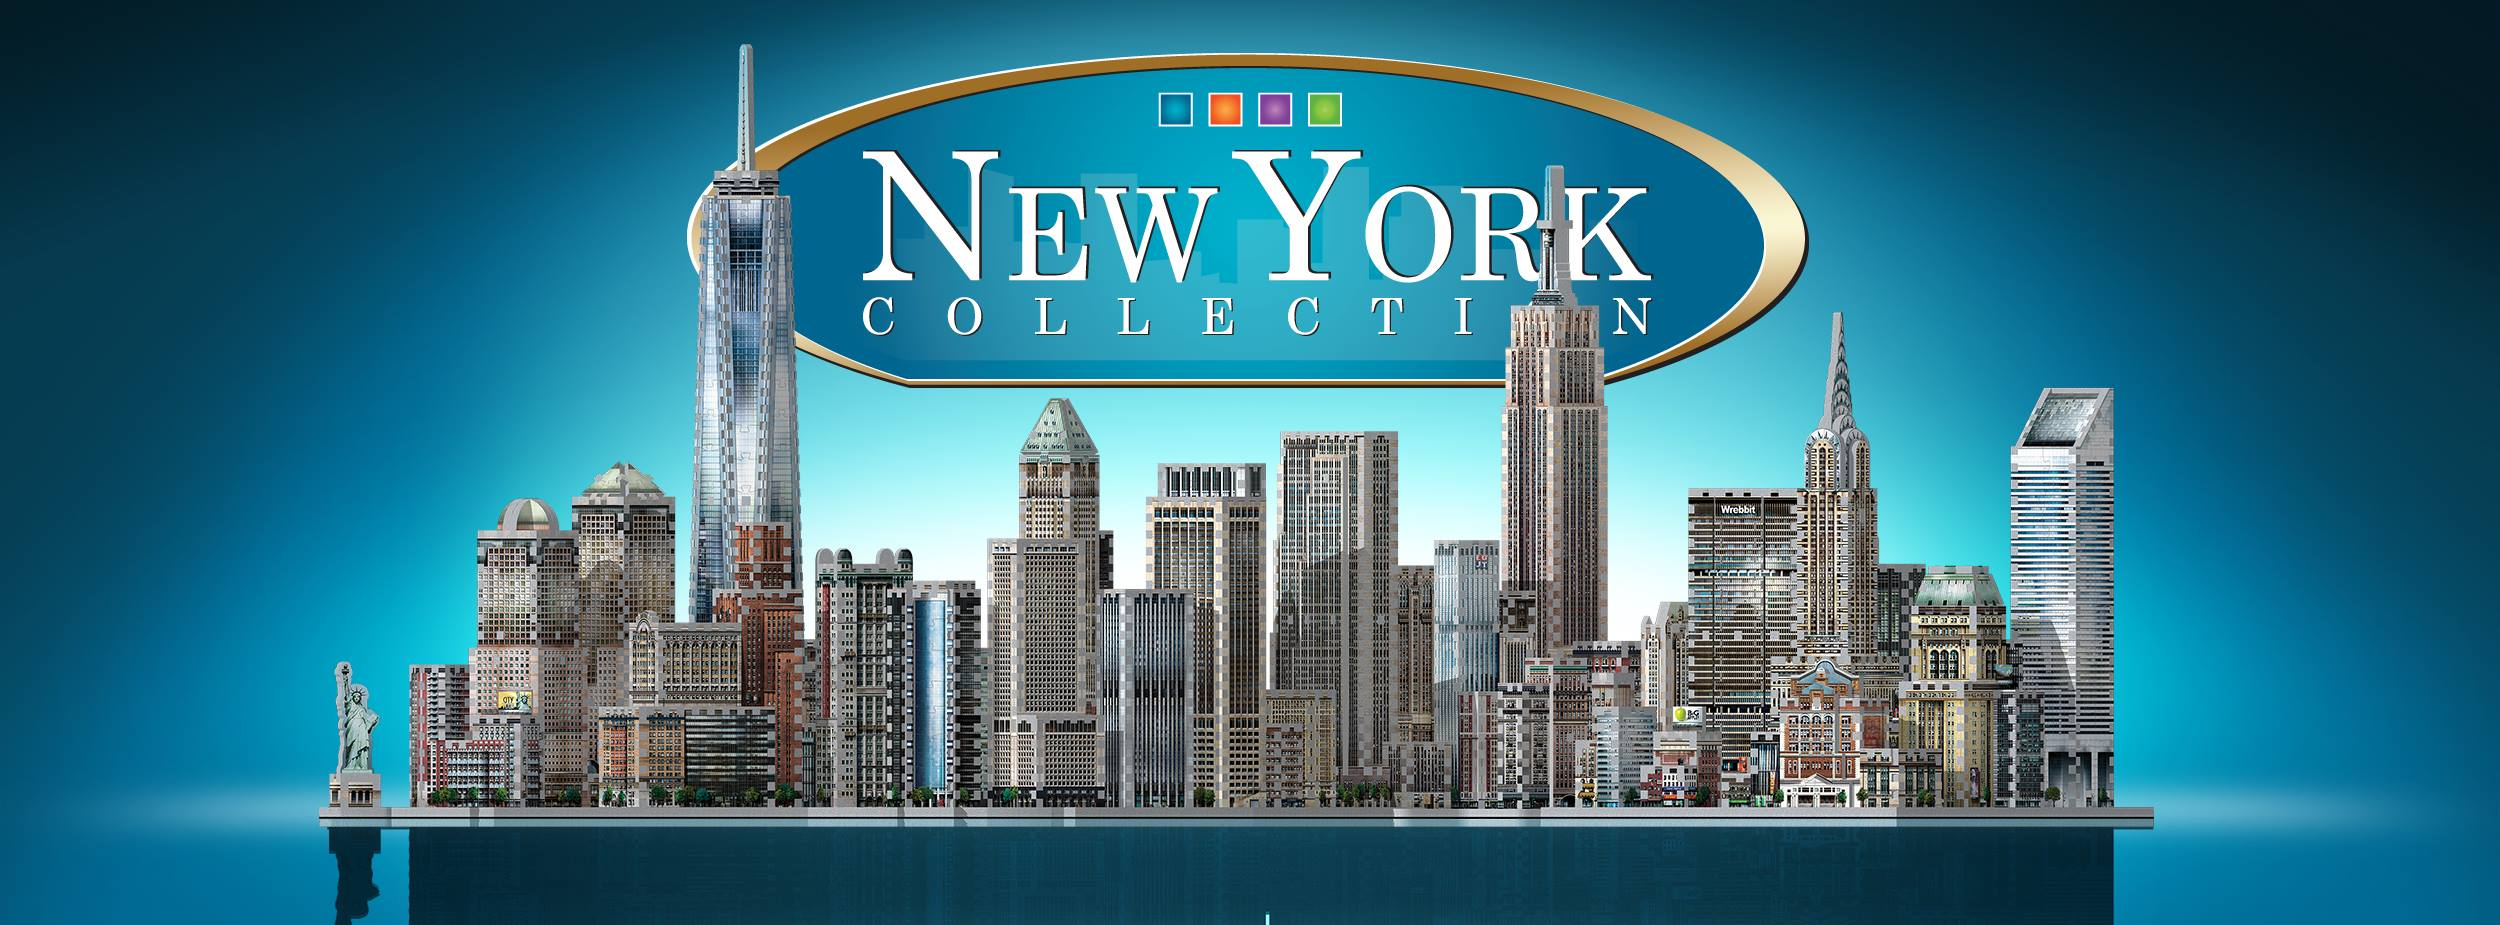 wrebbit-3d-3d-puzzle-full-new-york-collection-3575-teile-puzzle-wrebbit-set-new-york, 149.69 EUR @ puzzle-de